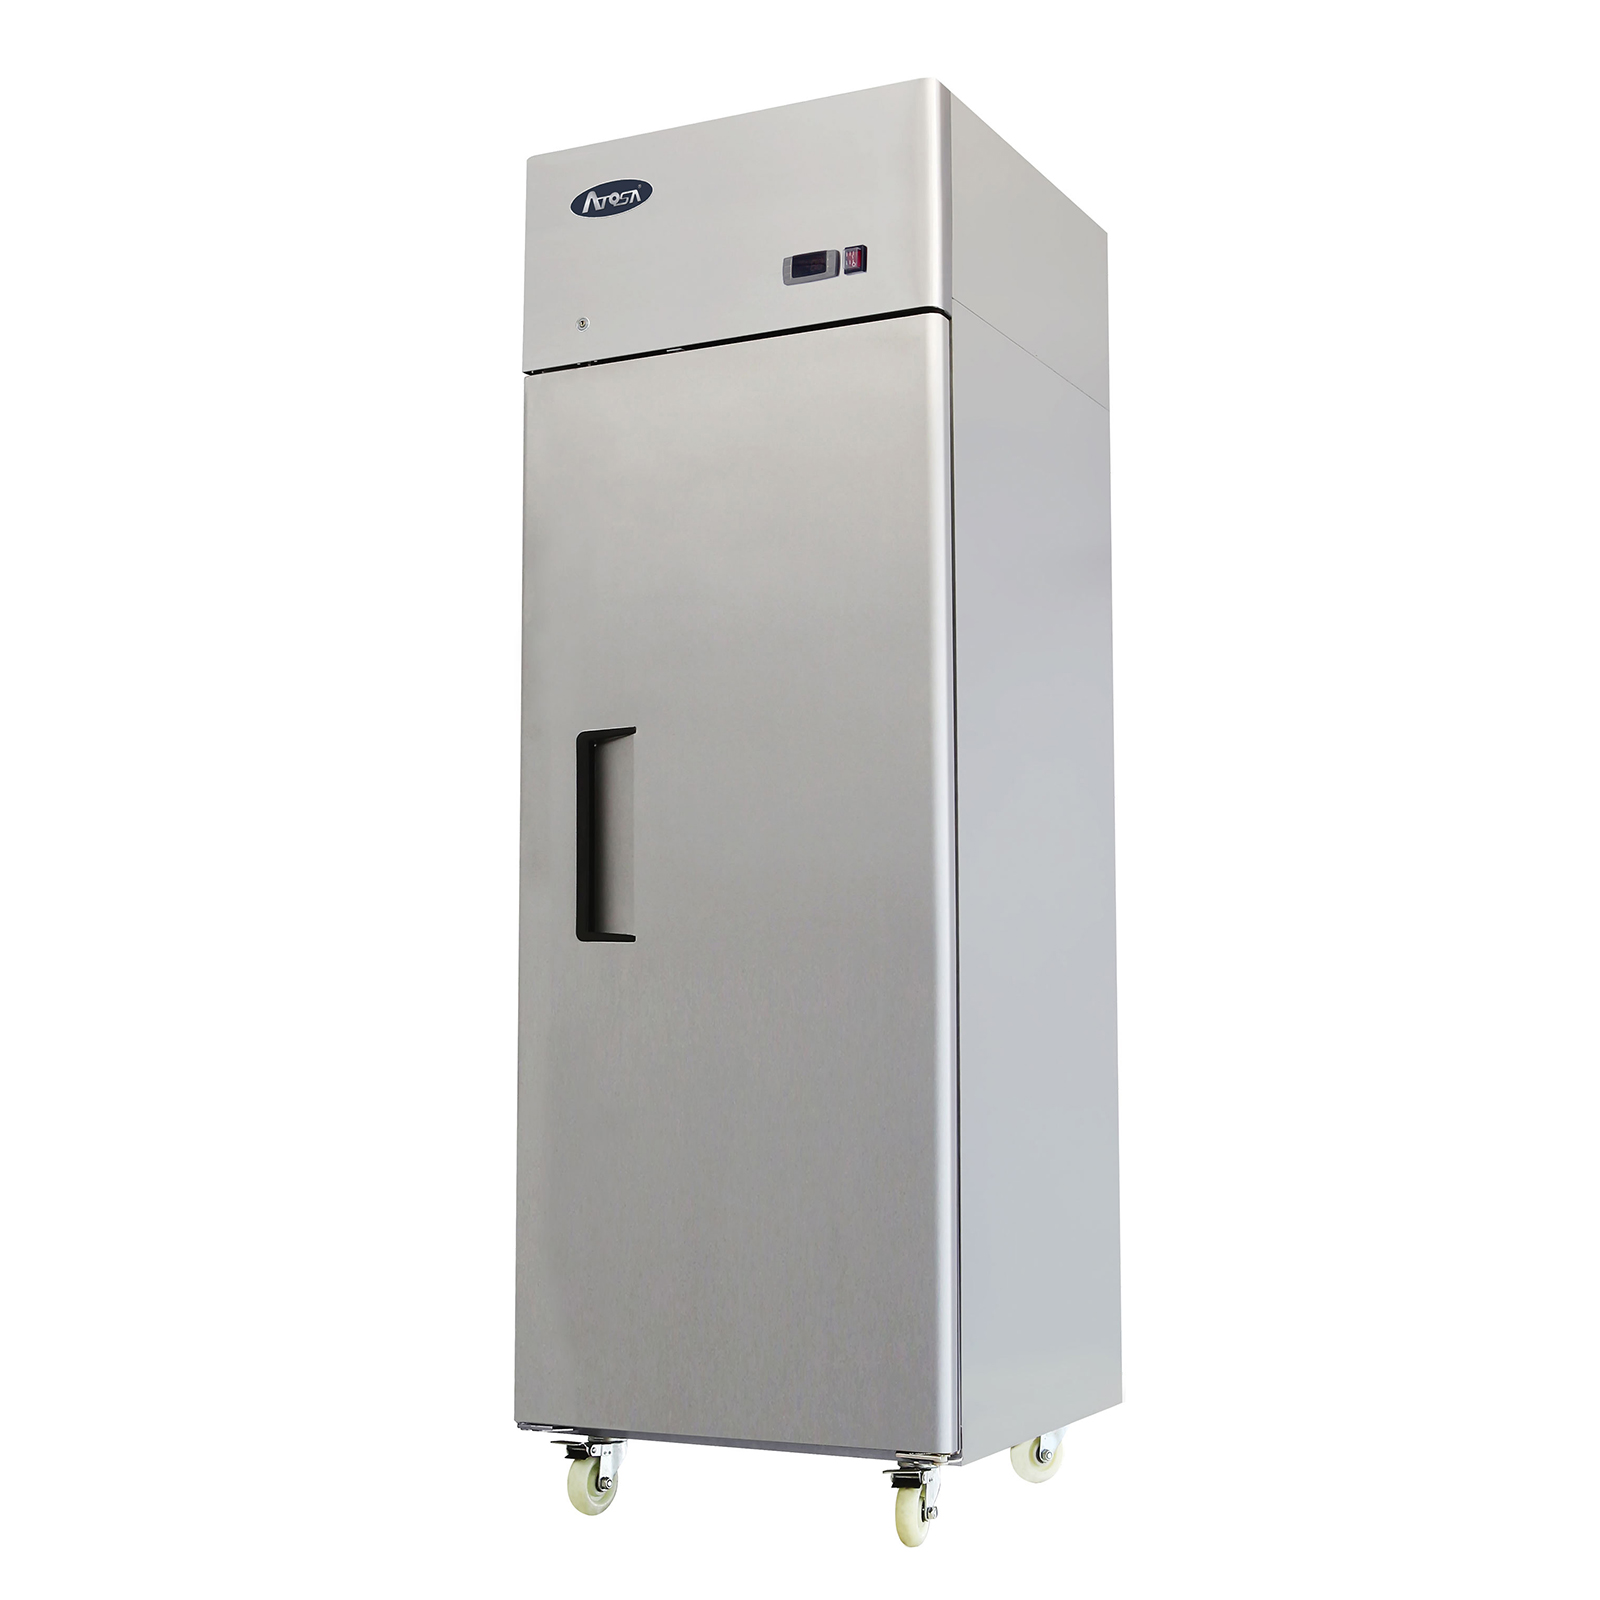 Atosa USA MBF8004GR refrigerator, reach-in